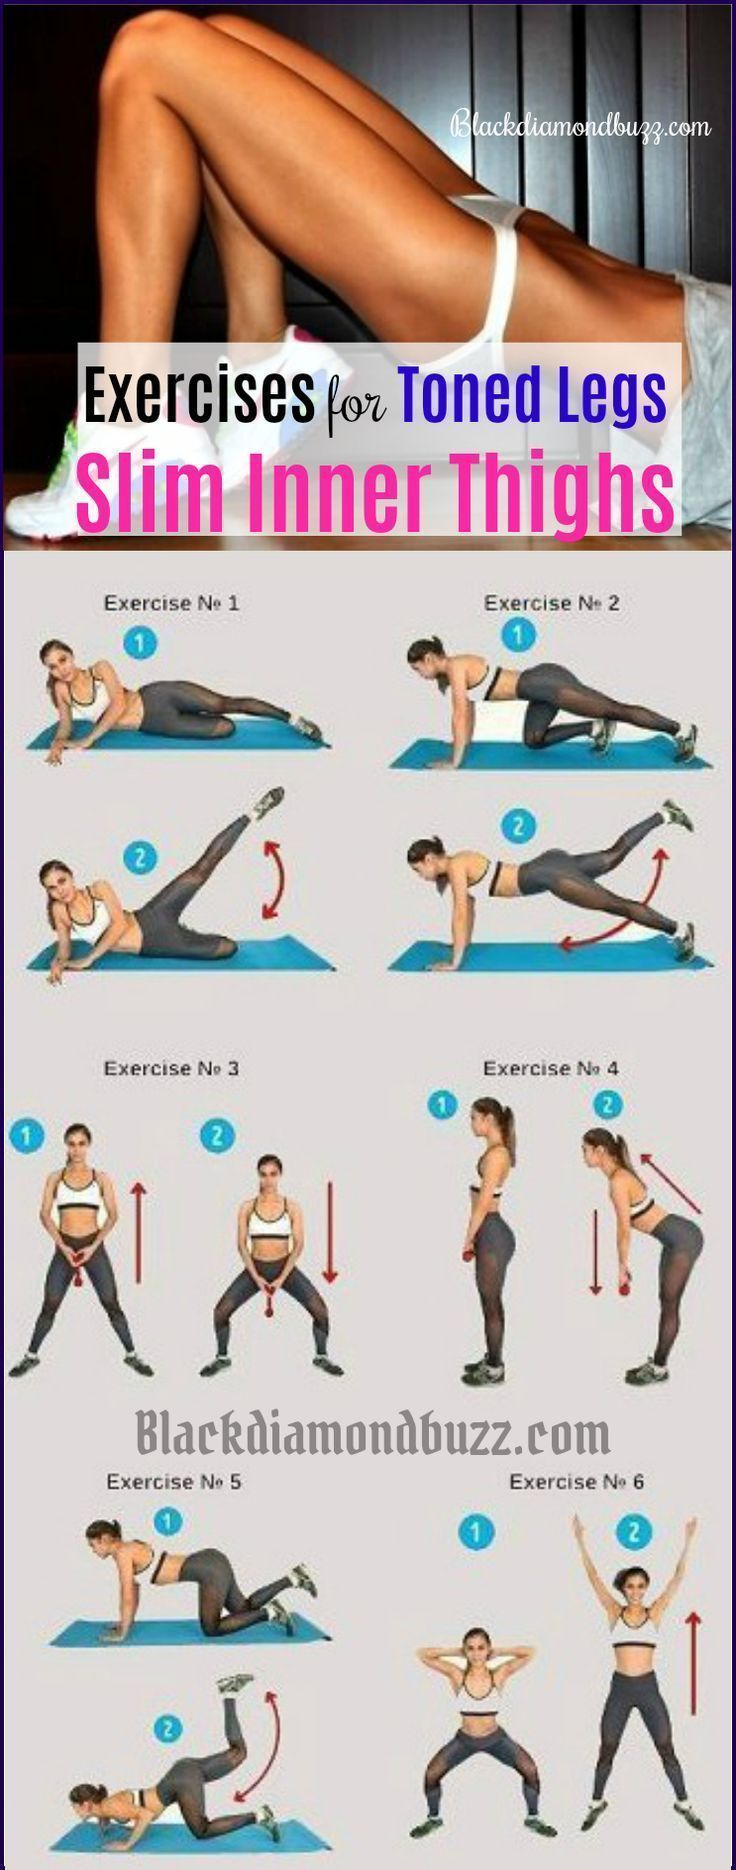 Best exercise for slim inner thighs and toned legs you can do at